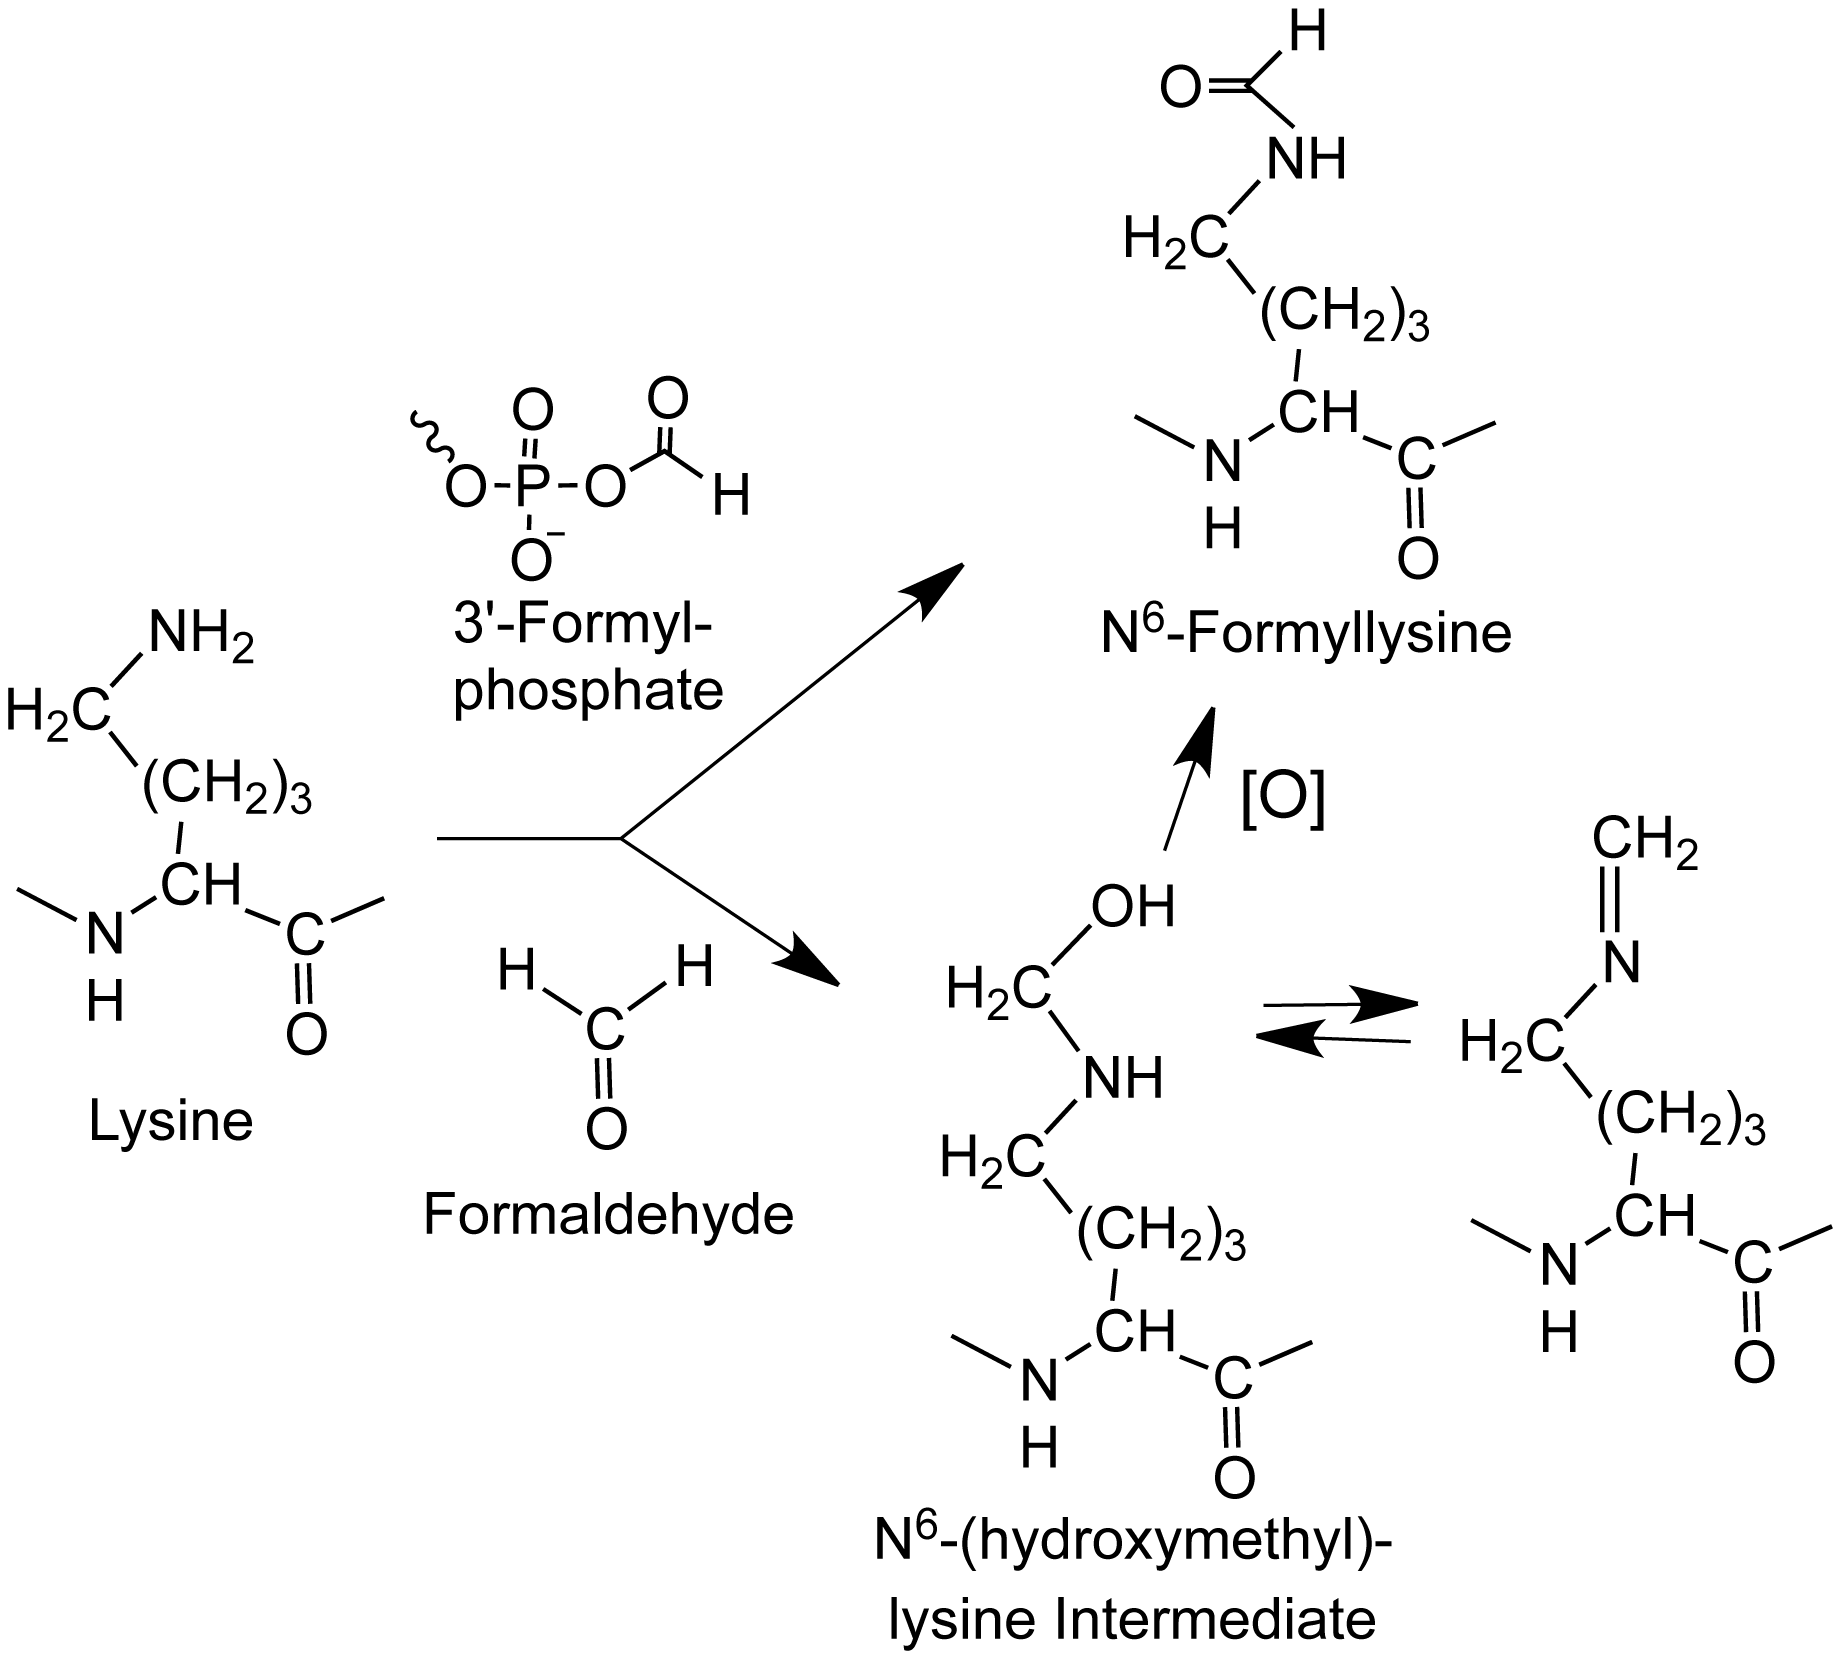 Sources of N<sup>6</sup>-formyllysine.